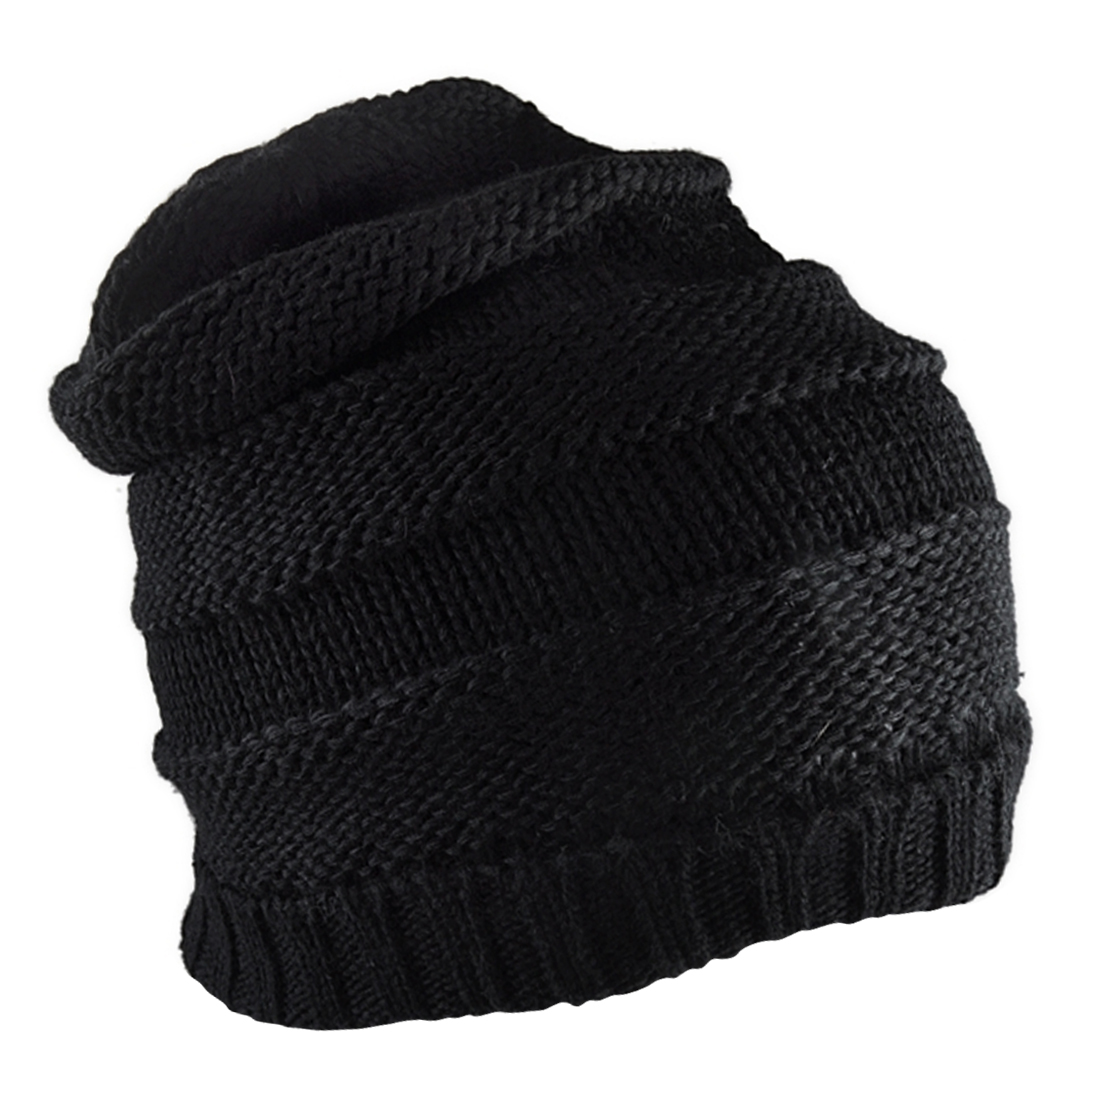 Men Women Black Elastic Hat Ribbing Detail Rolled Up Trim Knitting Beanie Cap